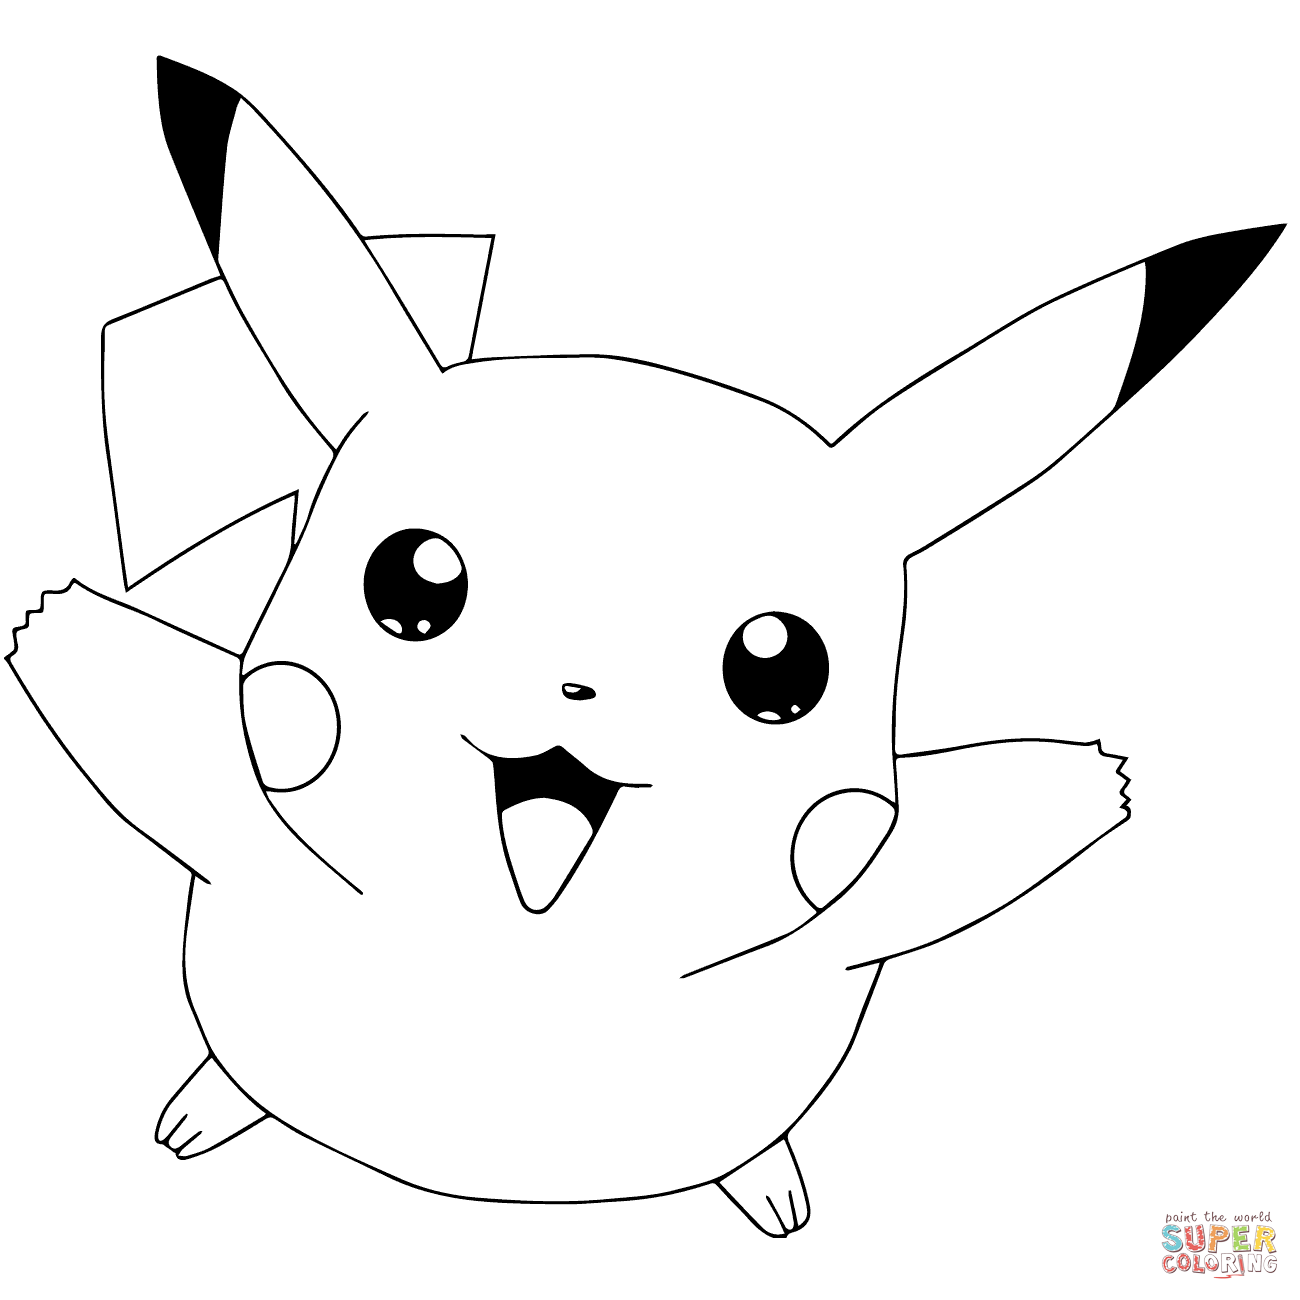 Pokémon Go Pikachu Flying Coloring Page Free Printable Coloring